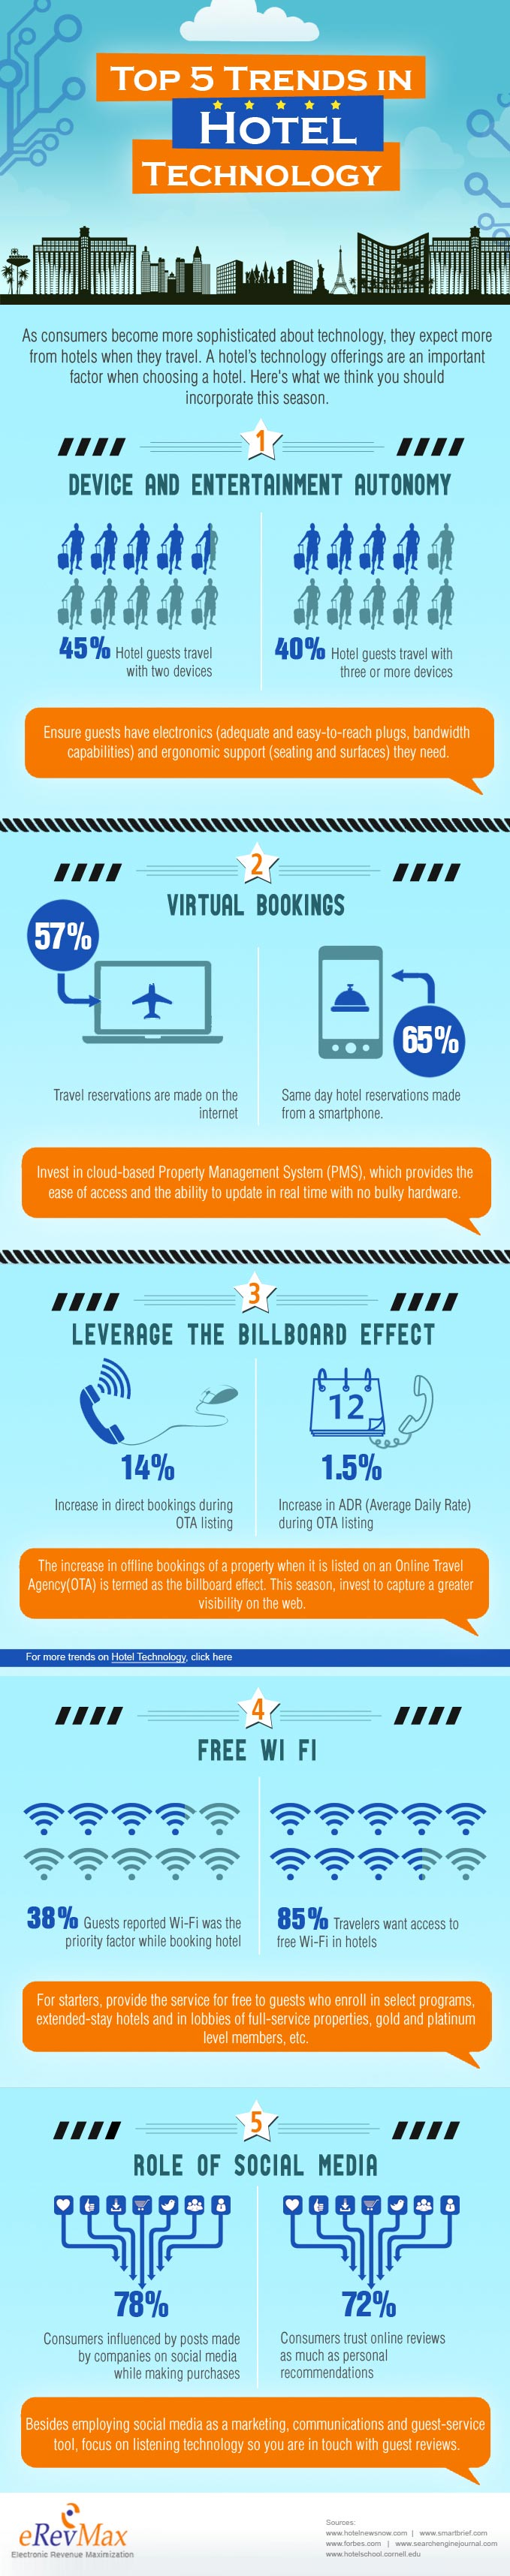 eRevMax-Infographic-Hotel-Technology-Trends-2013